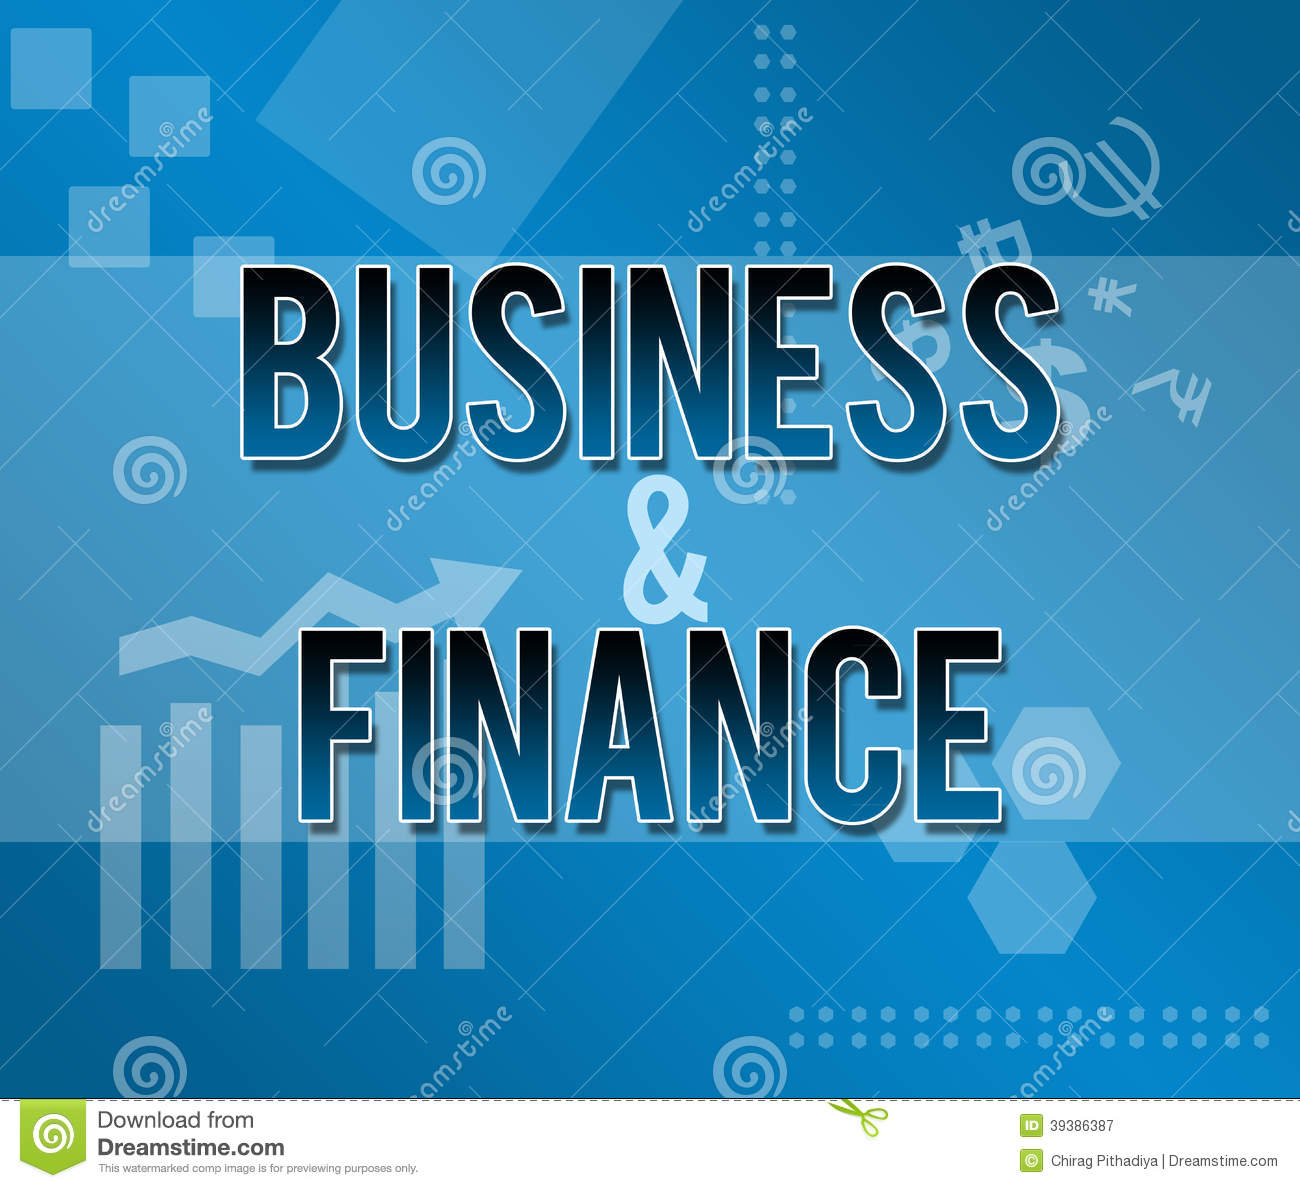 Finance: Business And Finance Blue Themed Background Stock Image